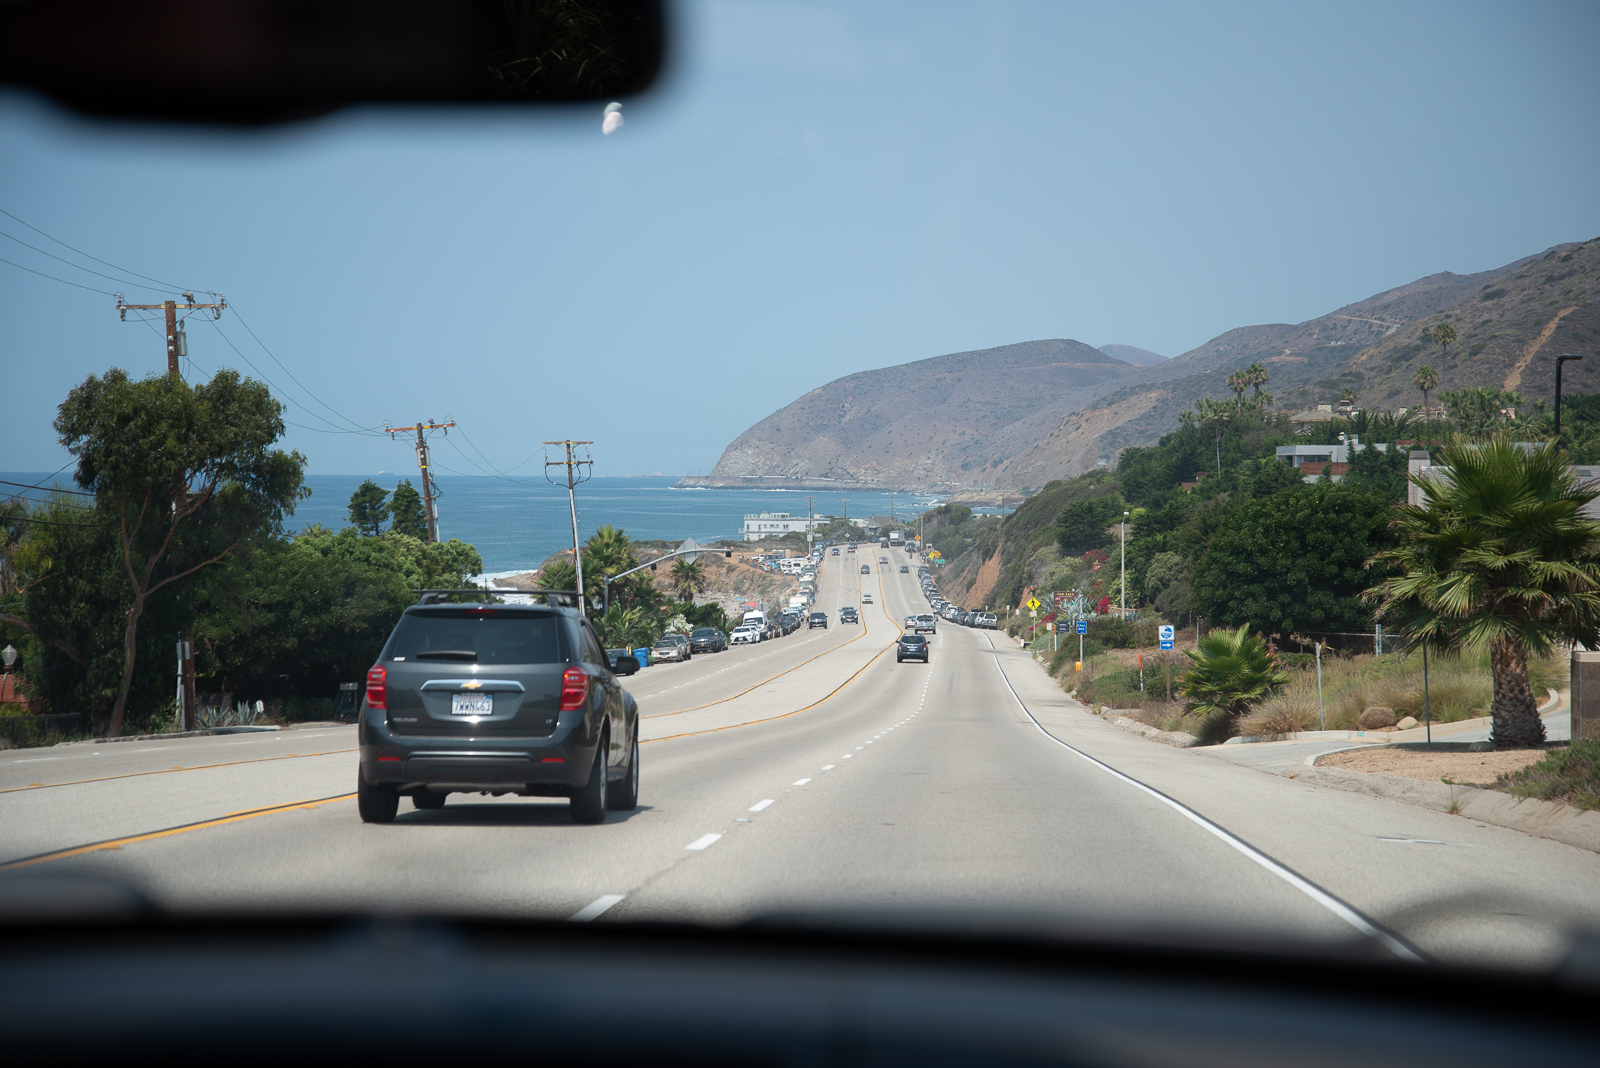 Heading north on Pacific Coast Highway.